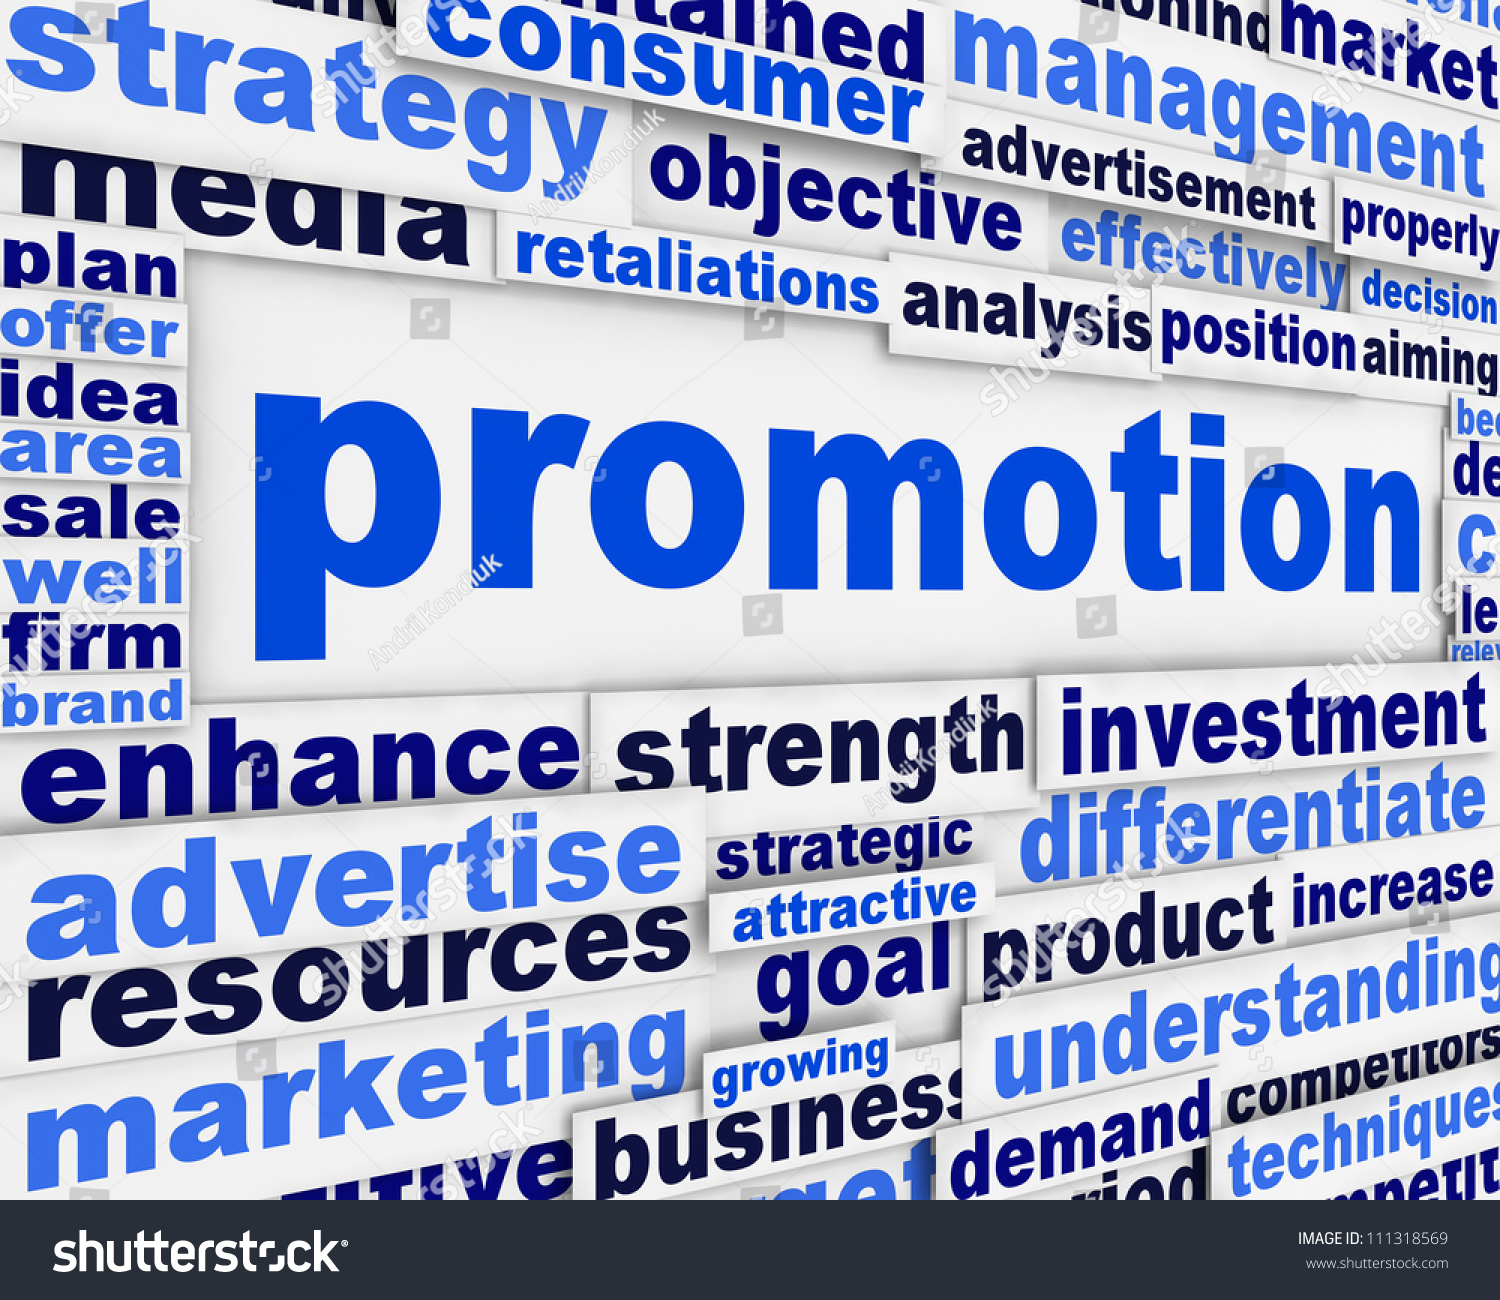 About Accent Marketing Stock Photo Promotion Poster Design Creative Marketing Message